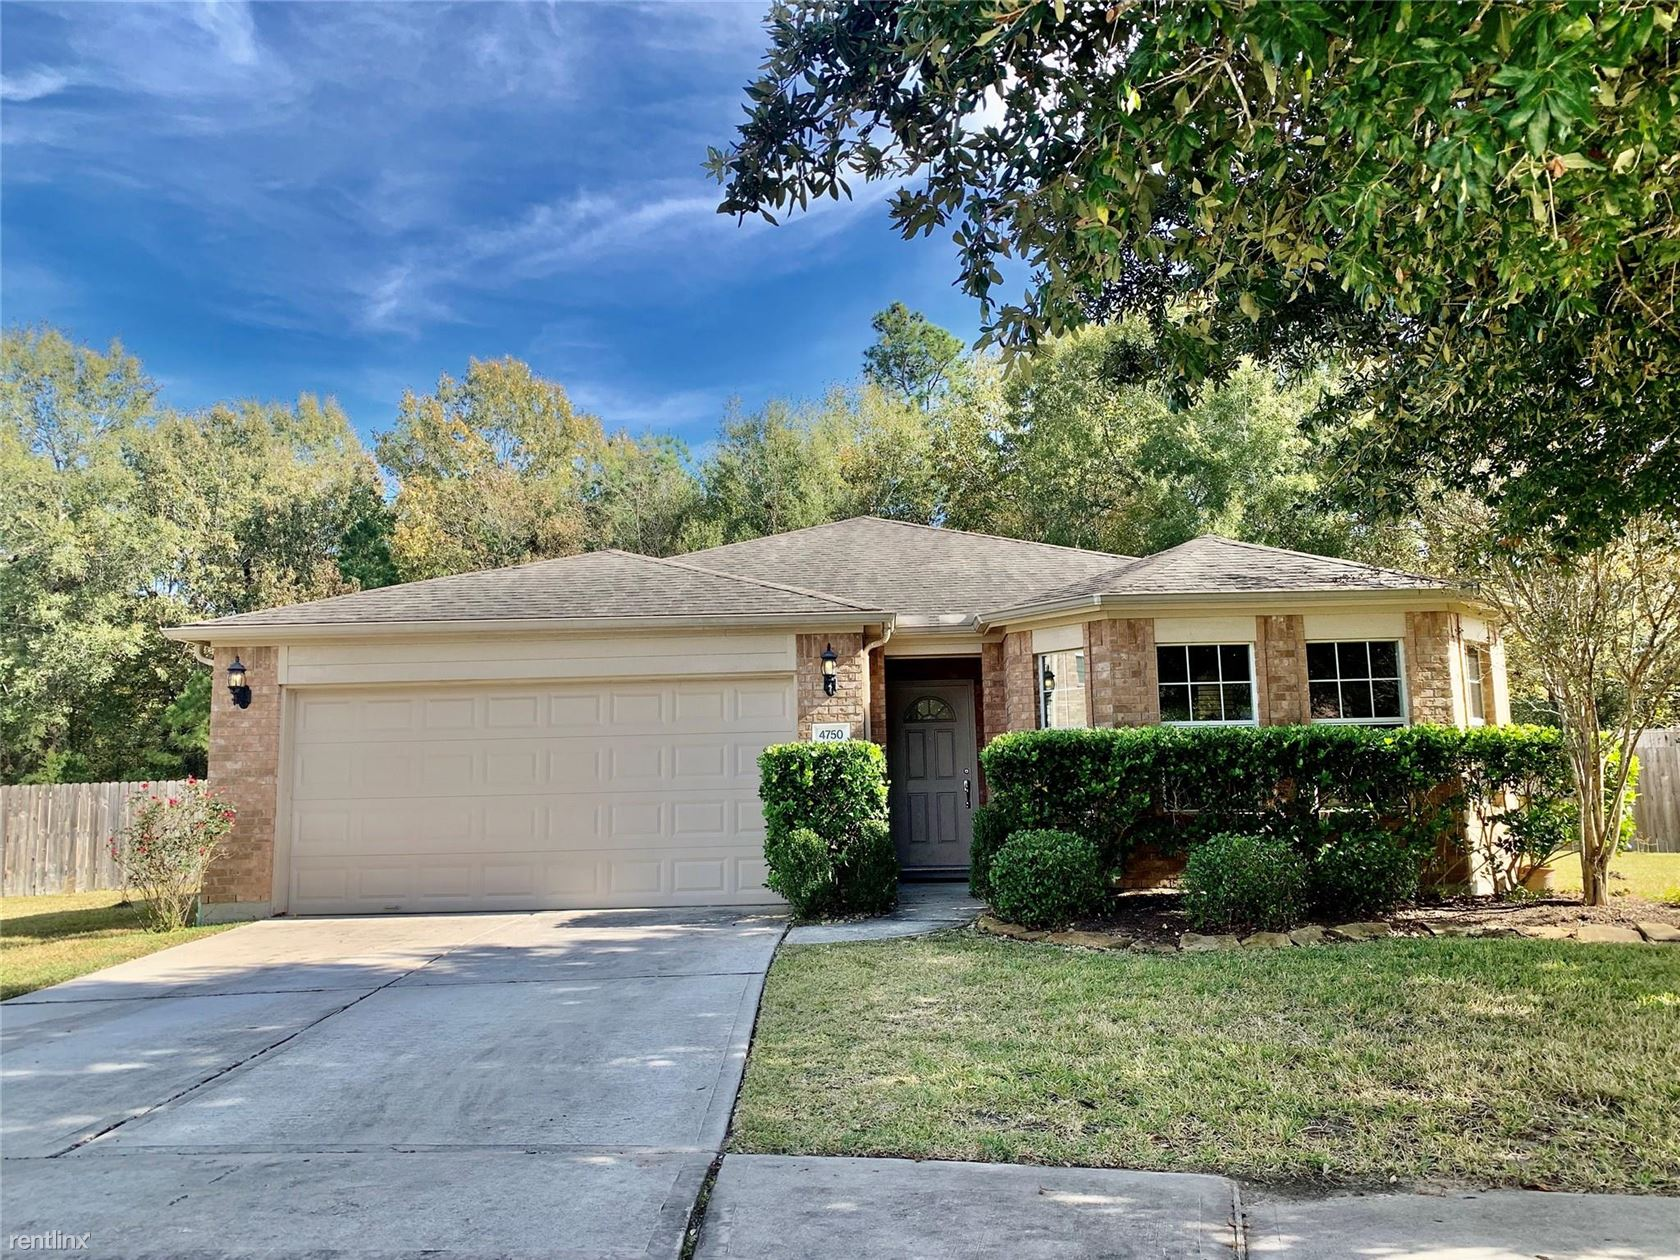 4750 Woodspring Glen Ln, Kingwood, TX - $1,700